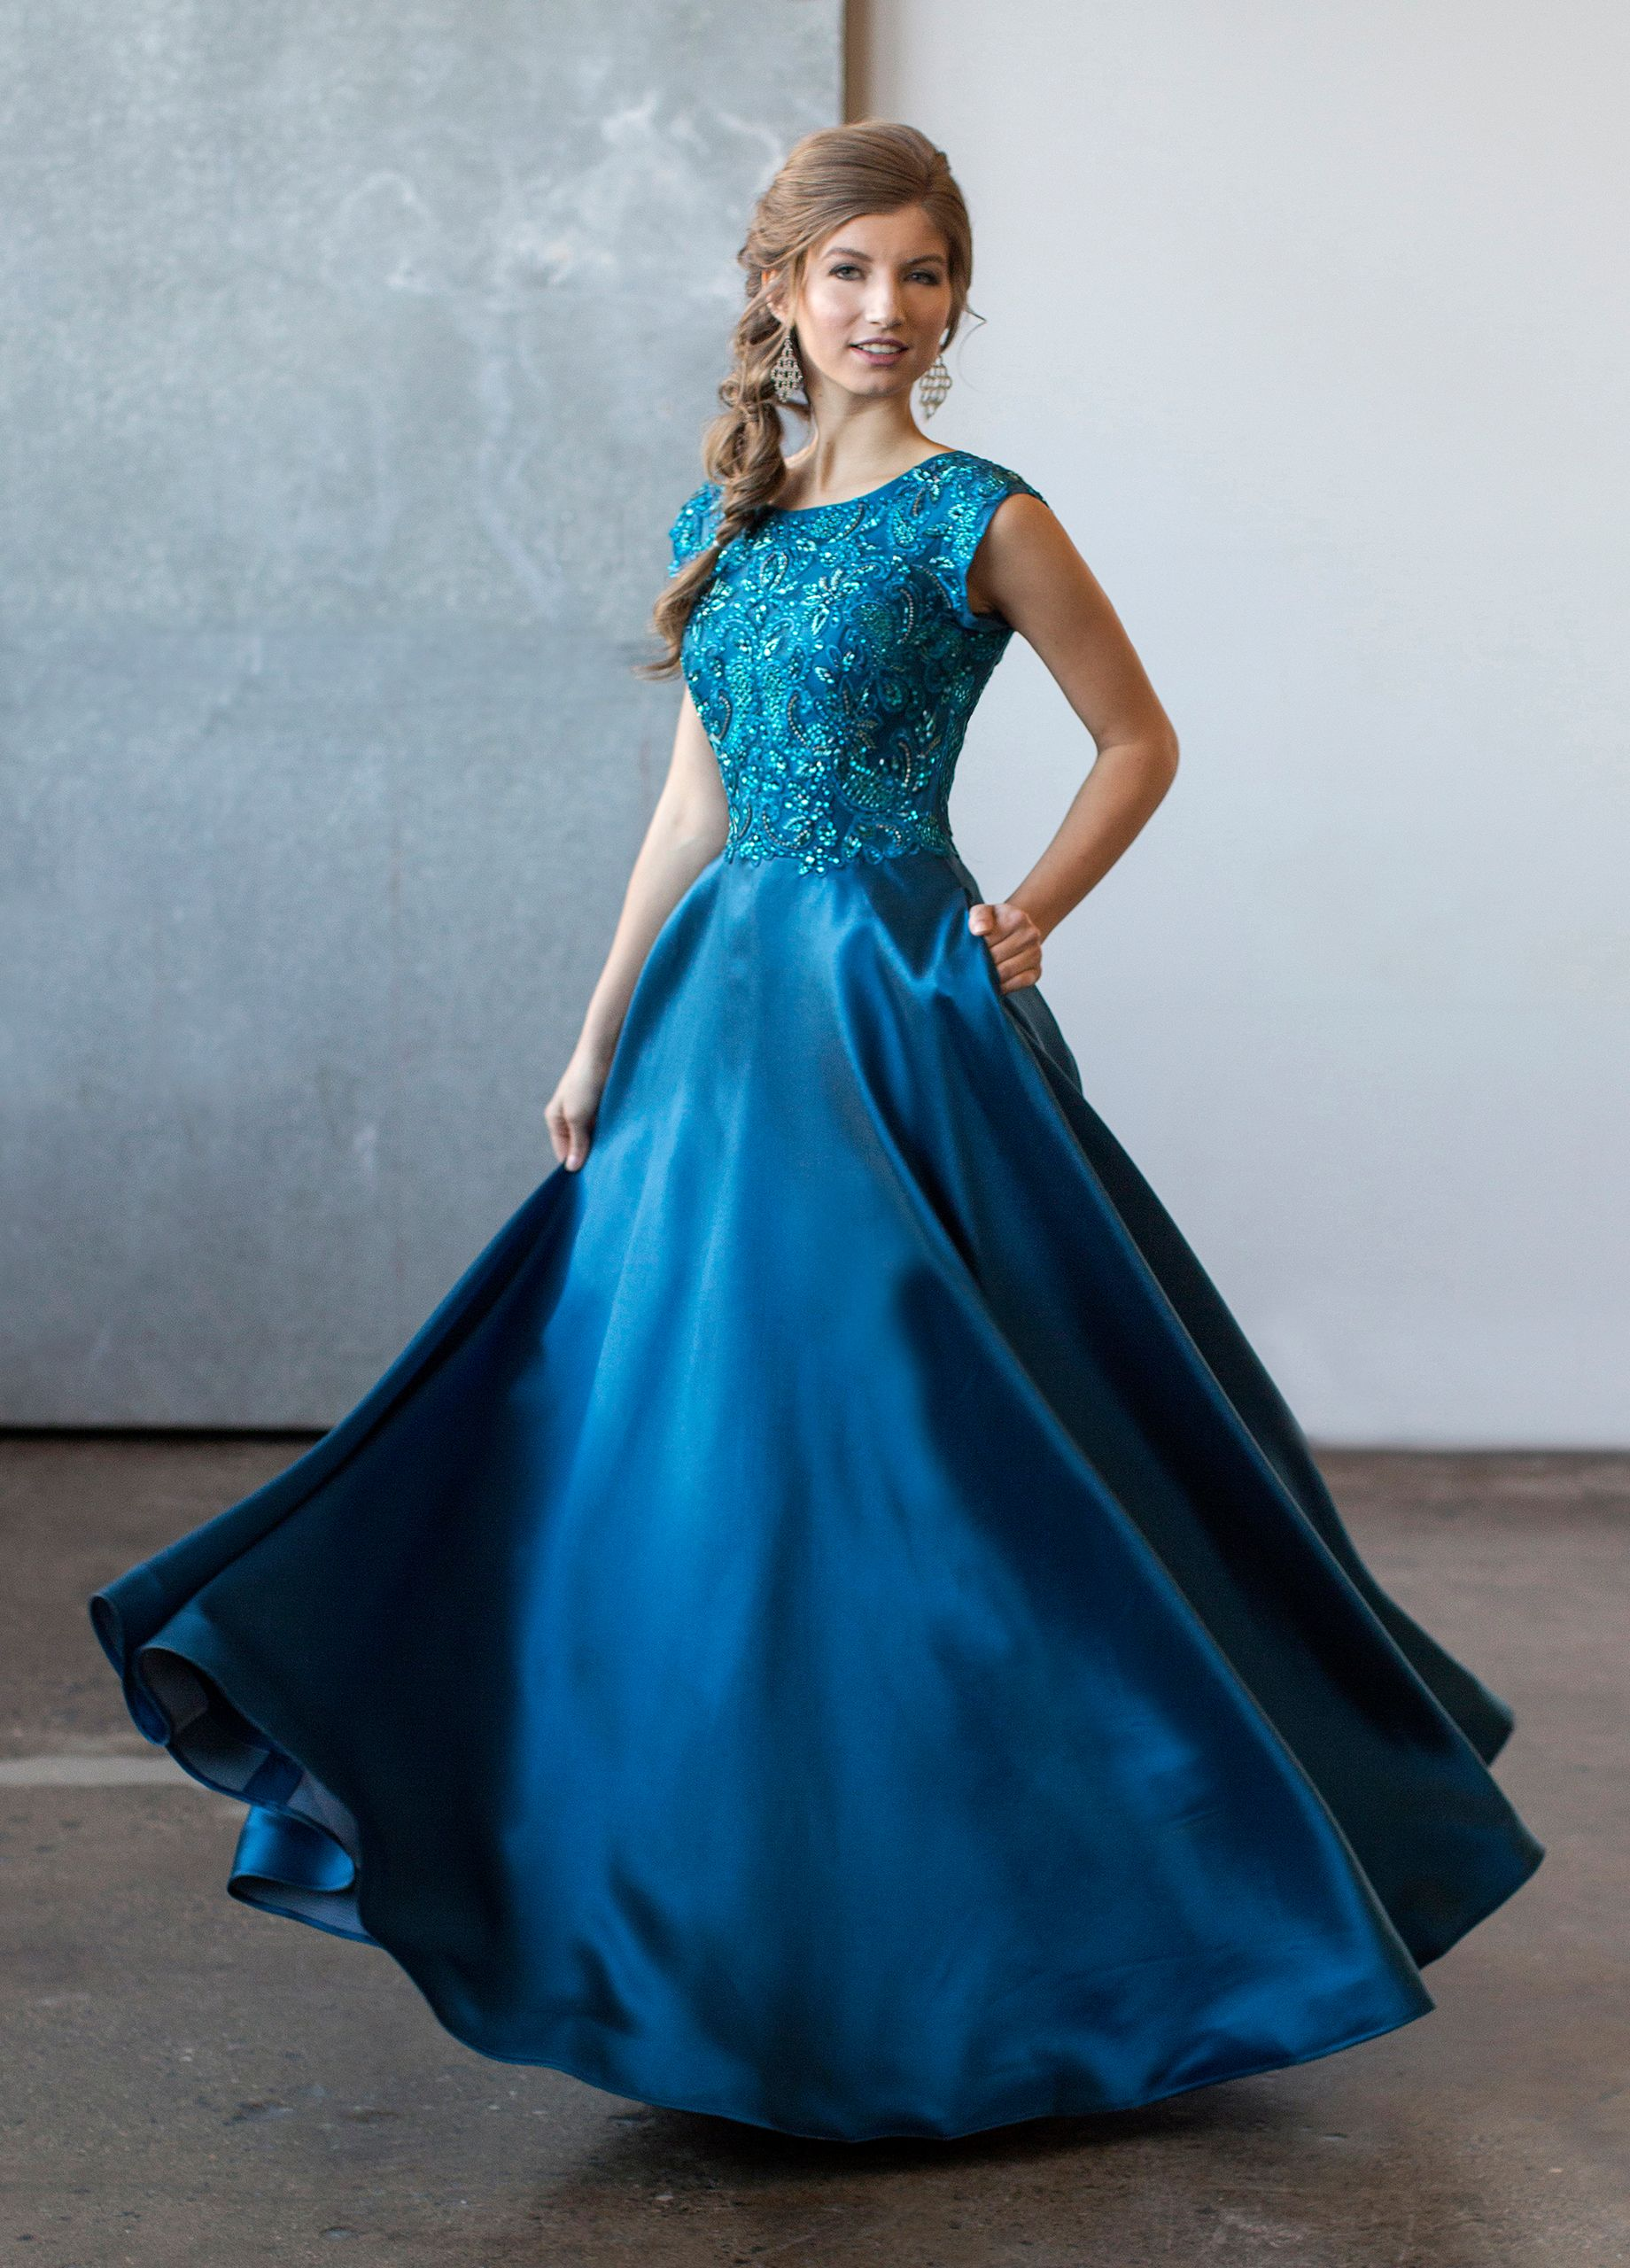 Enchanting Babettes Prom Dresses Composition - All Wedding Dresses ...